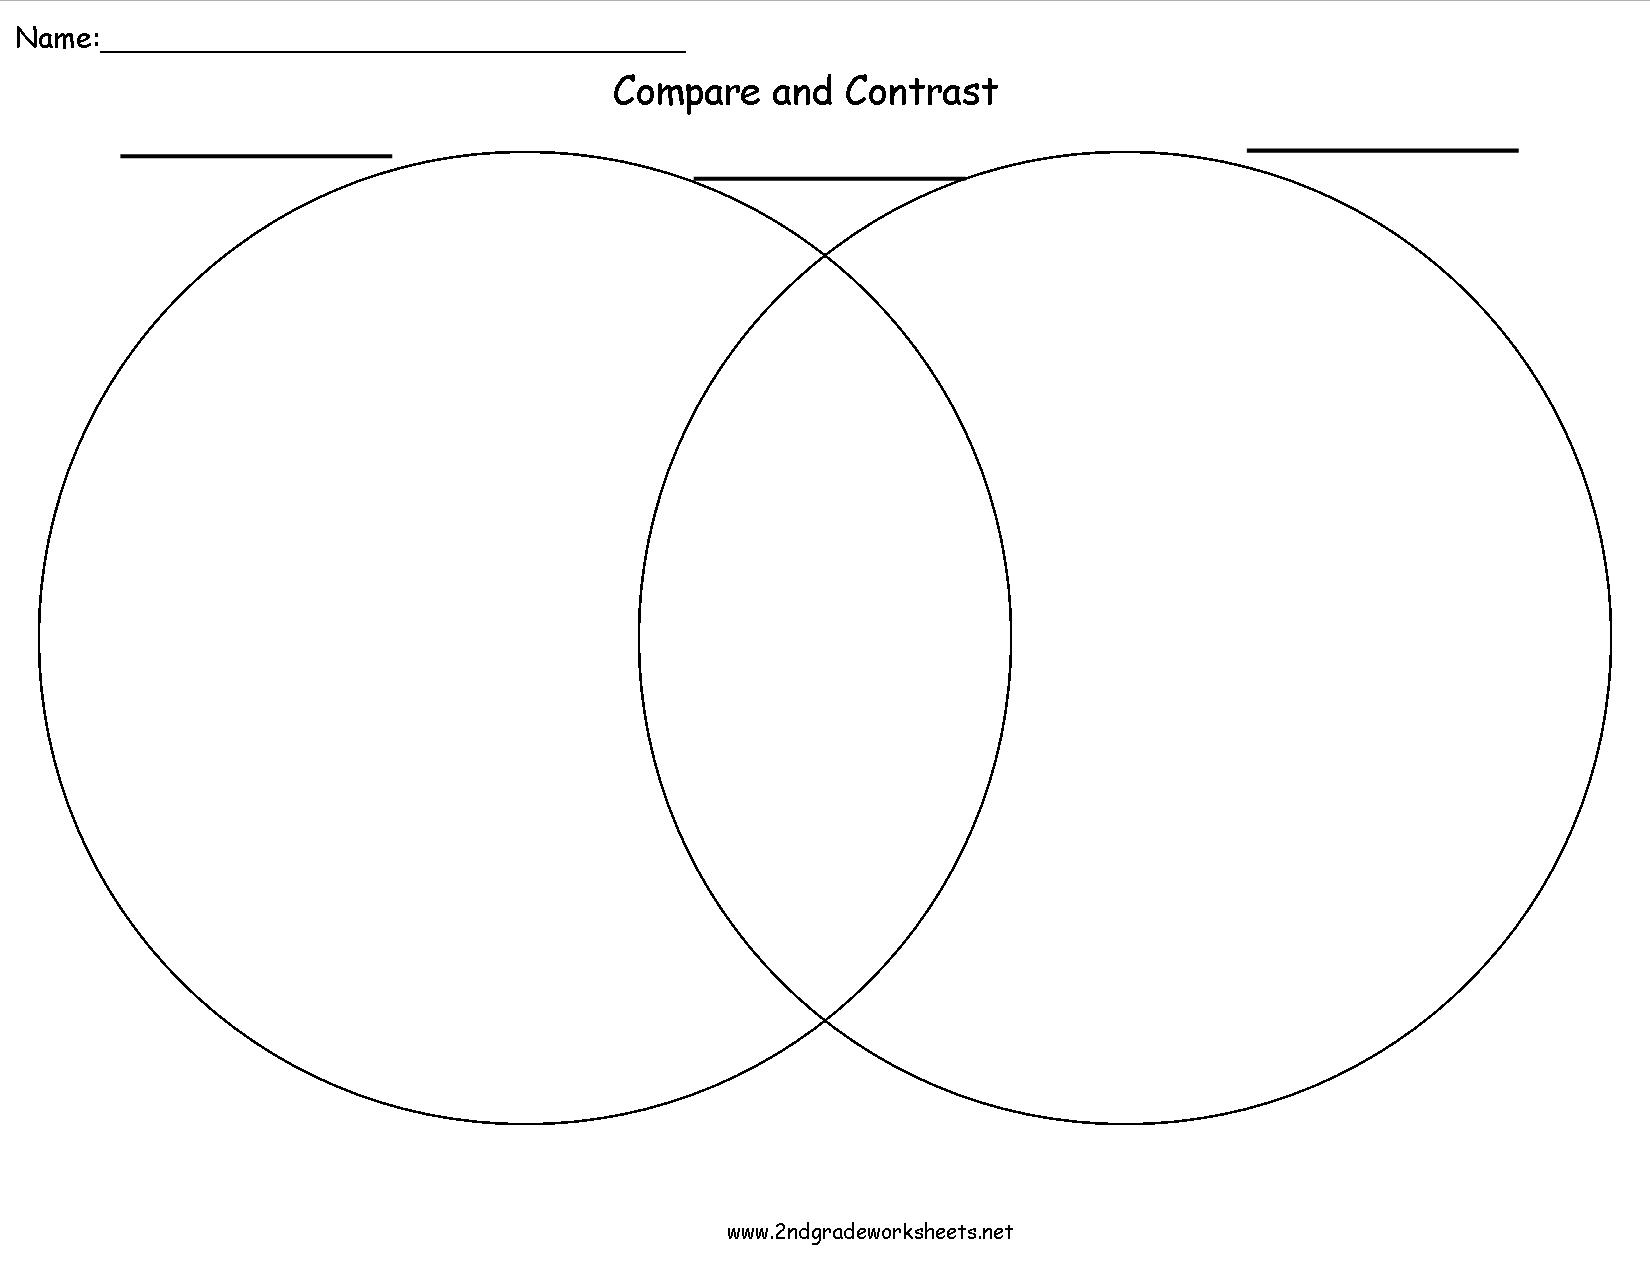 Triple Venn Diagram Worksheet